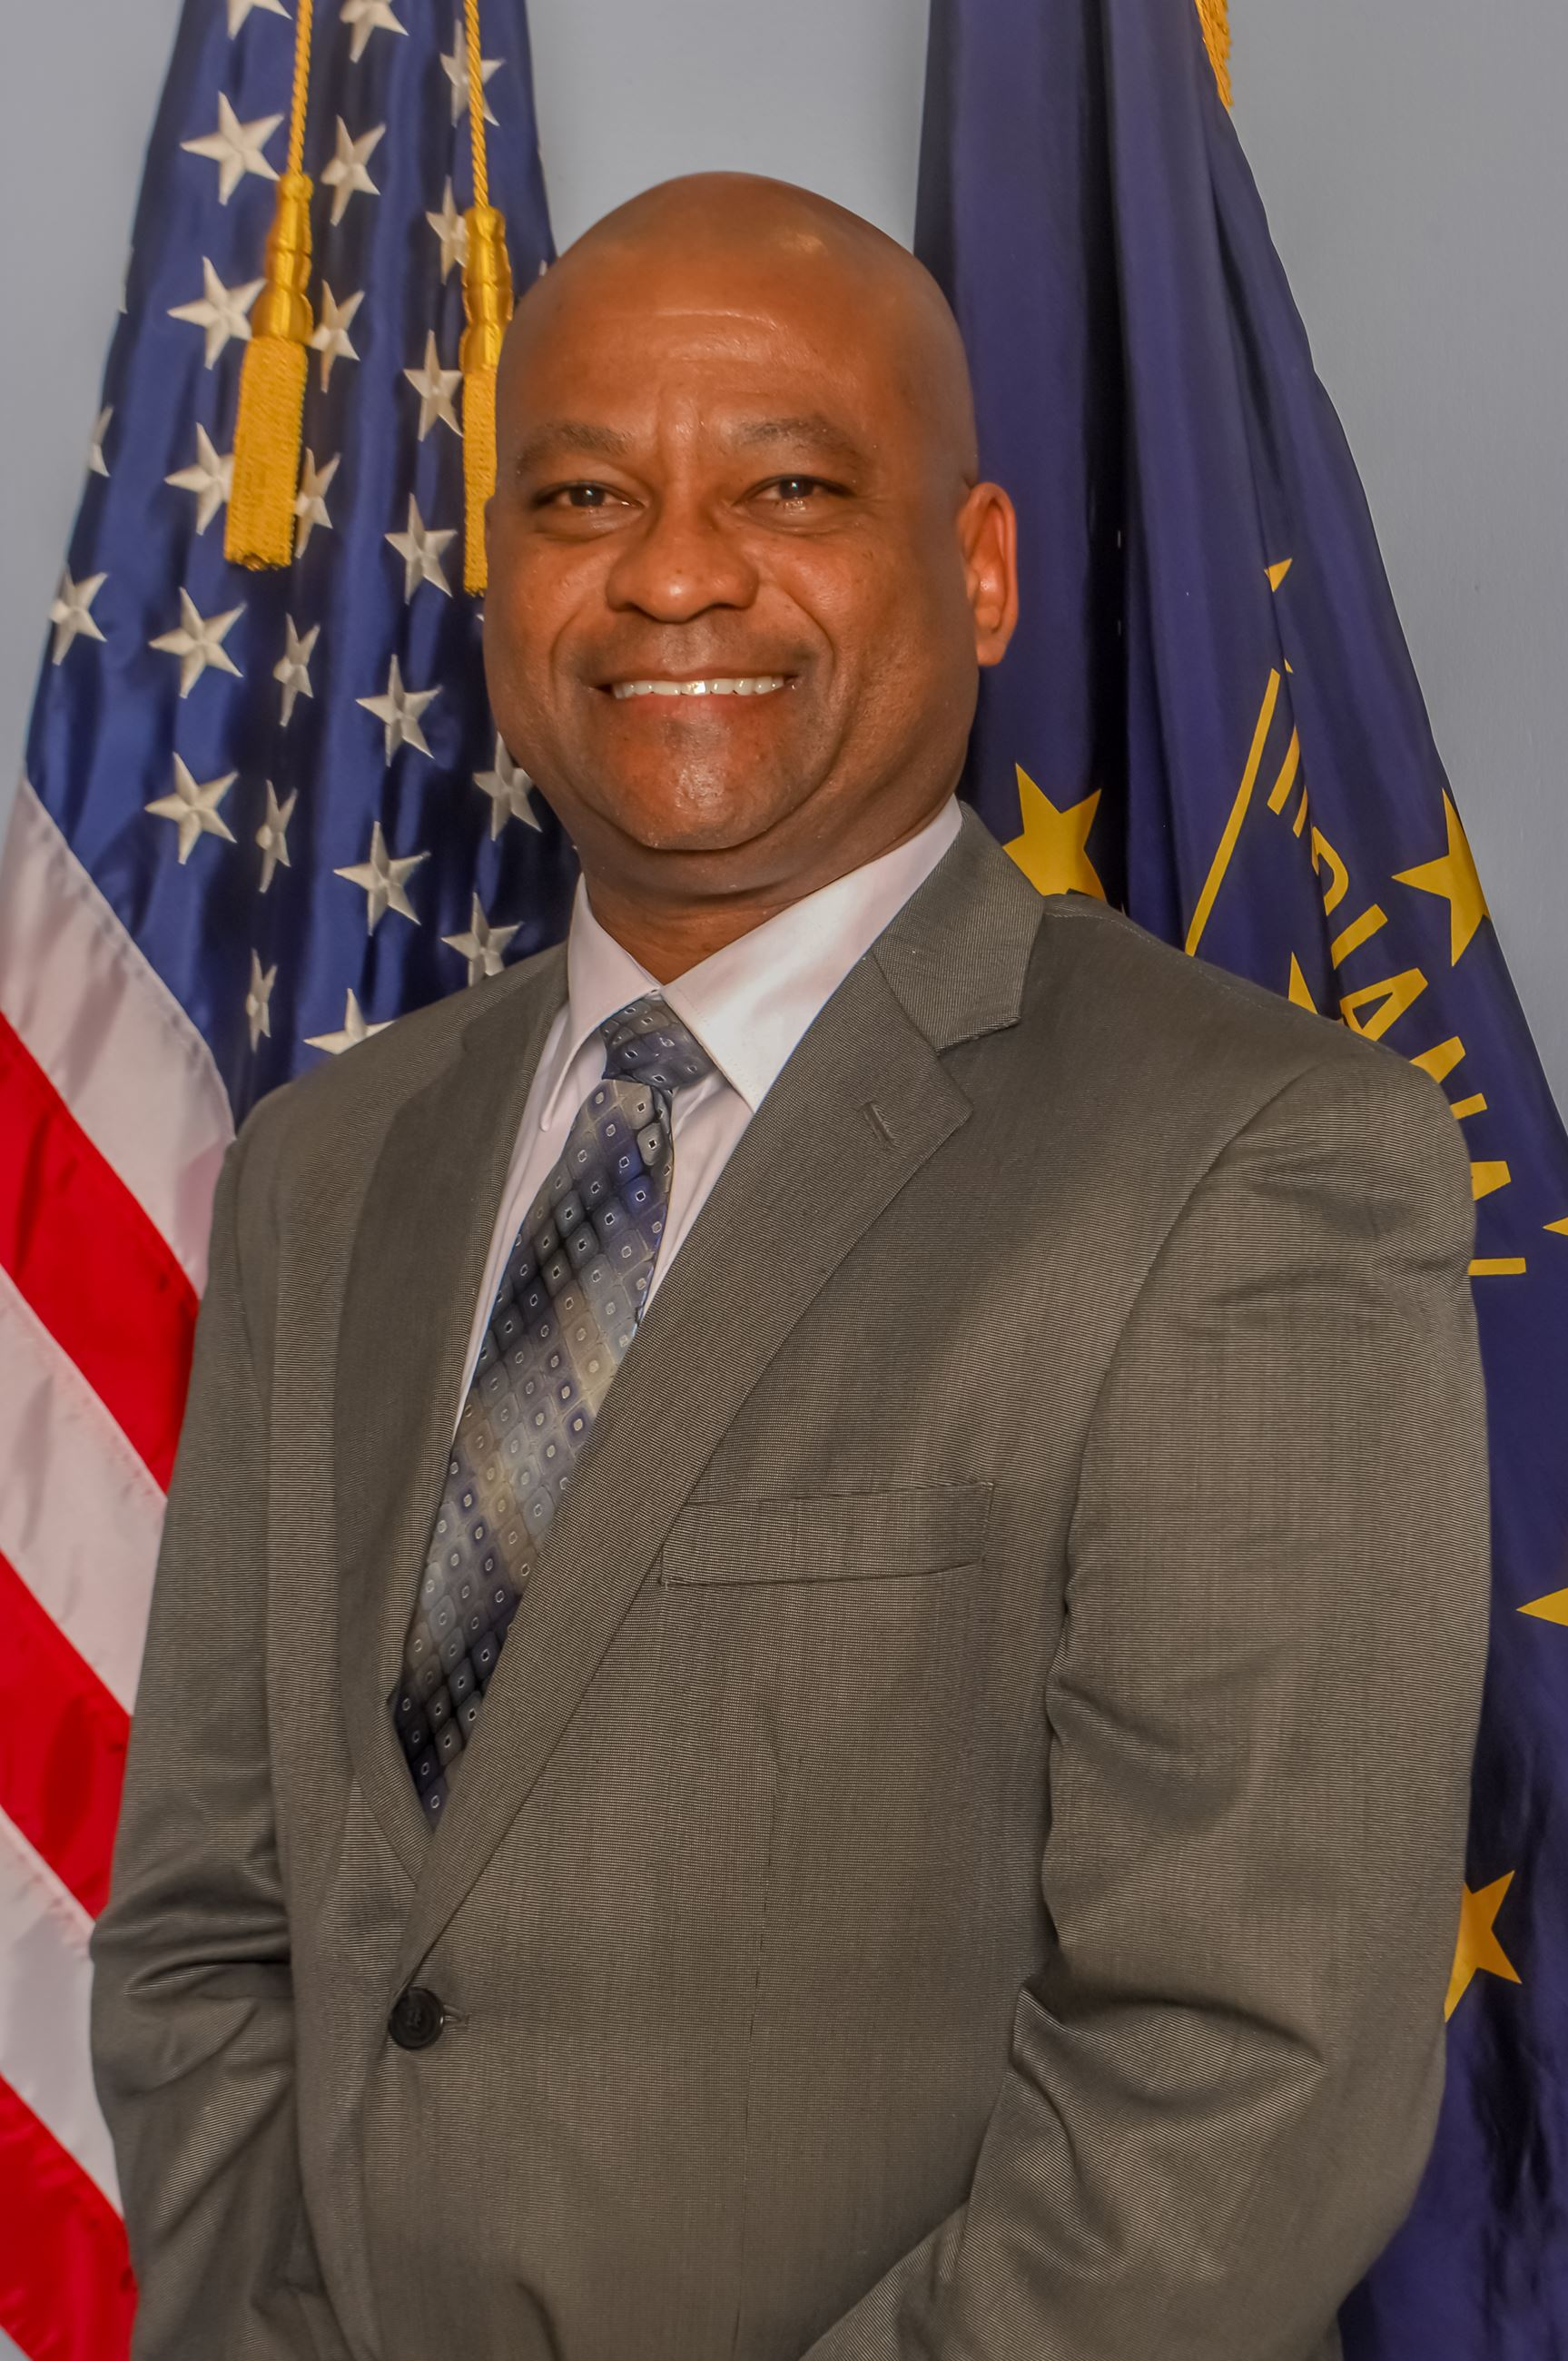 Michigan City Council Member Bryant Dabney